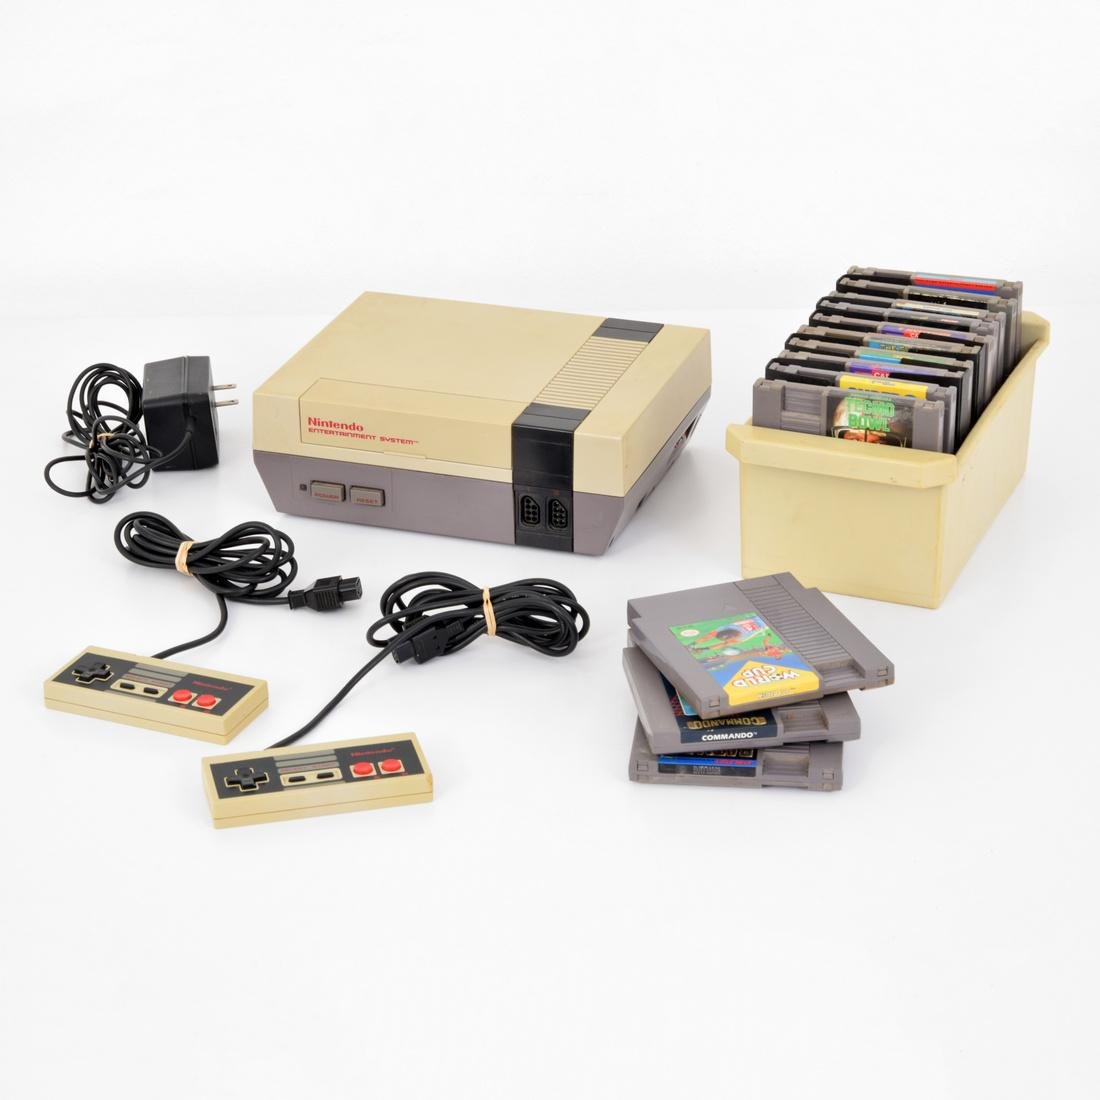 Nintendo Entertainment System, Games & Controllers